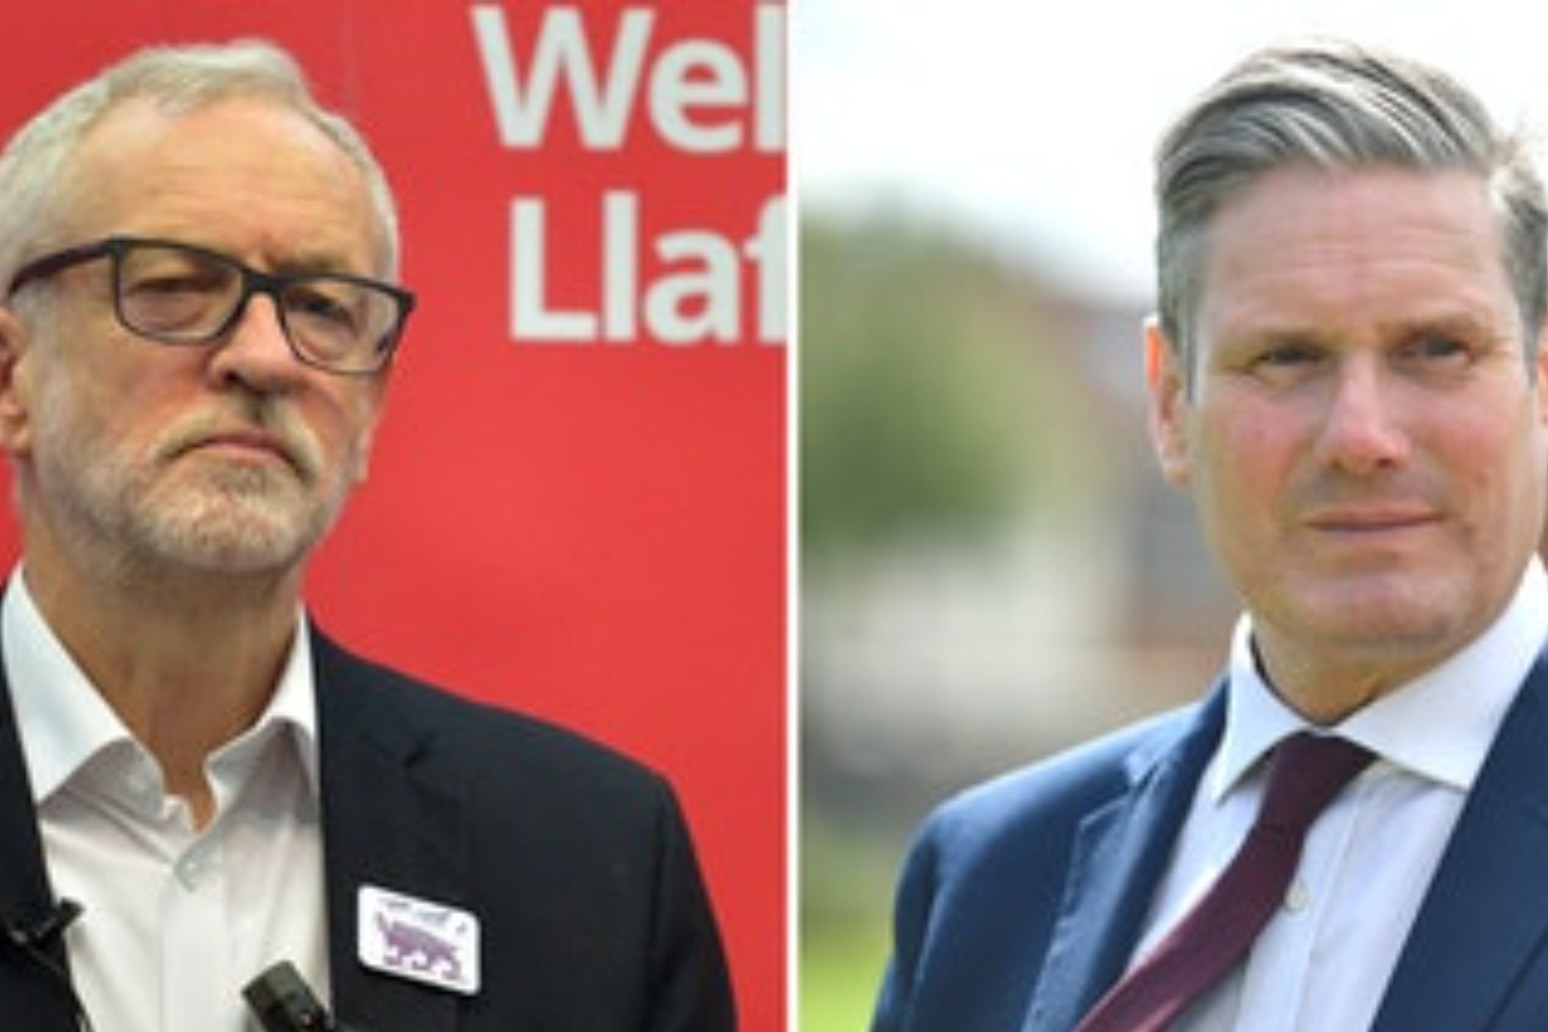 Labour warned of split after Corbyn suspension following anti-Semitism verdict